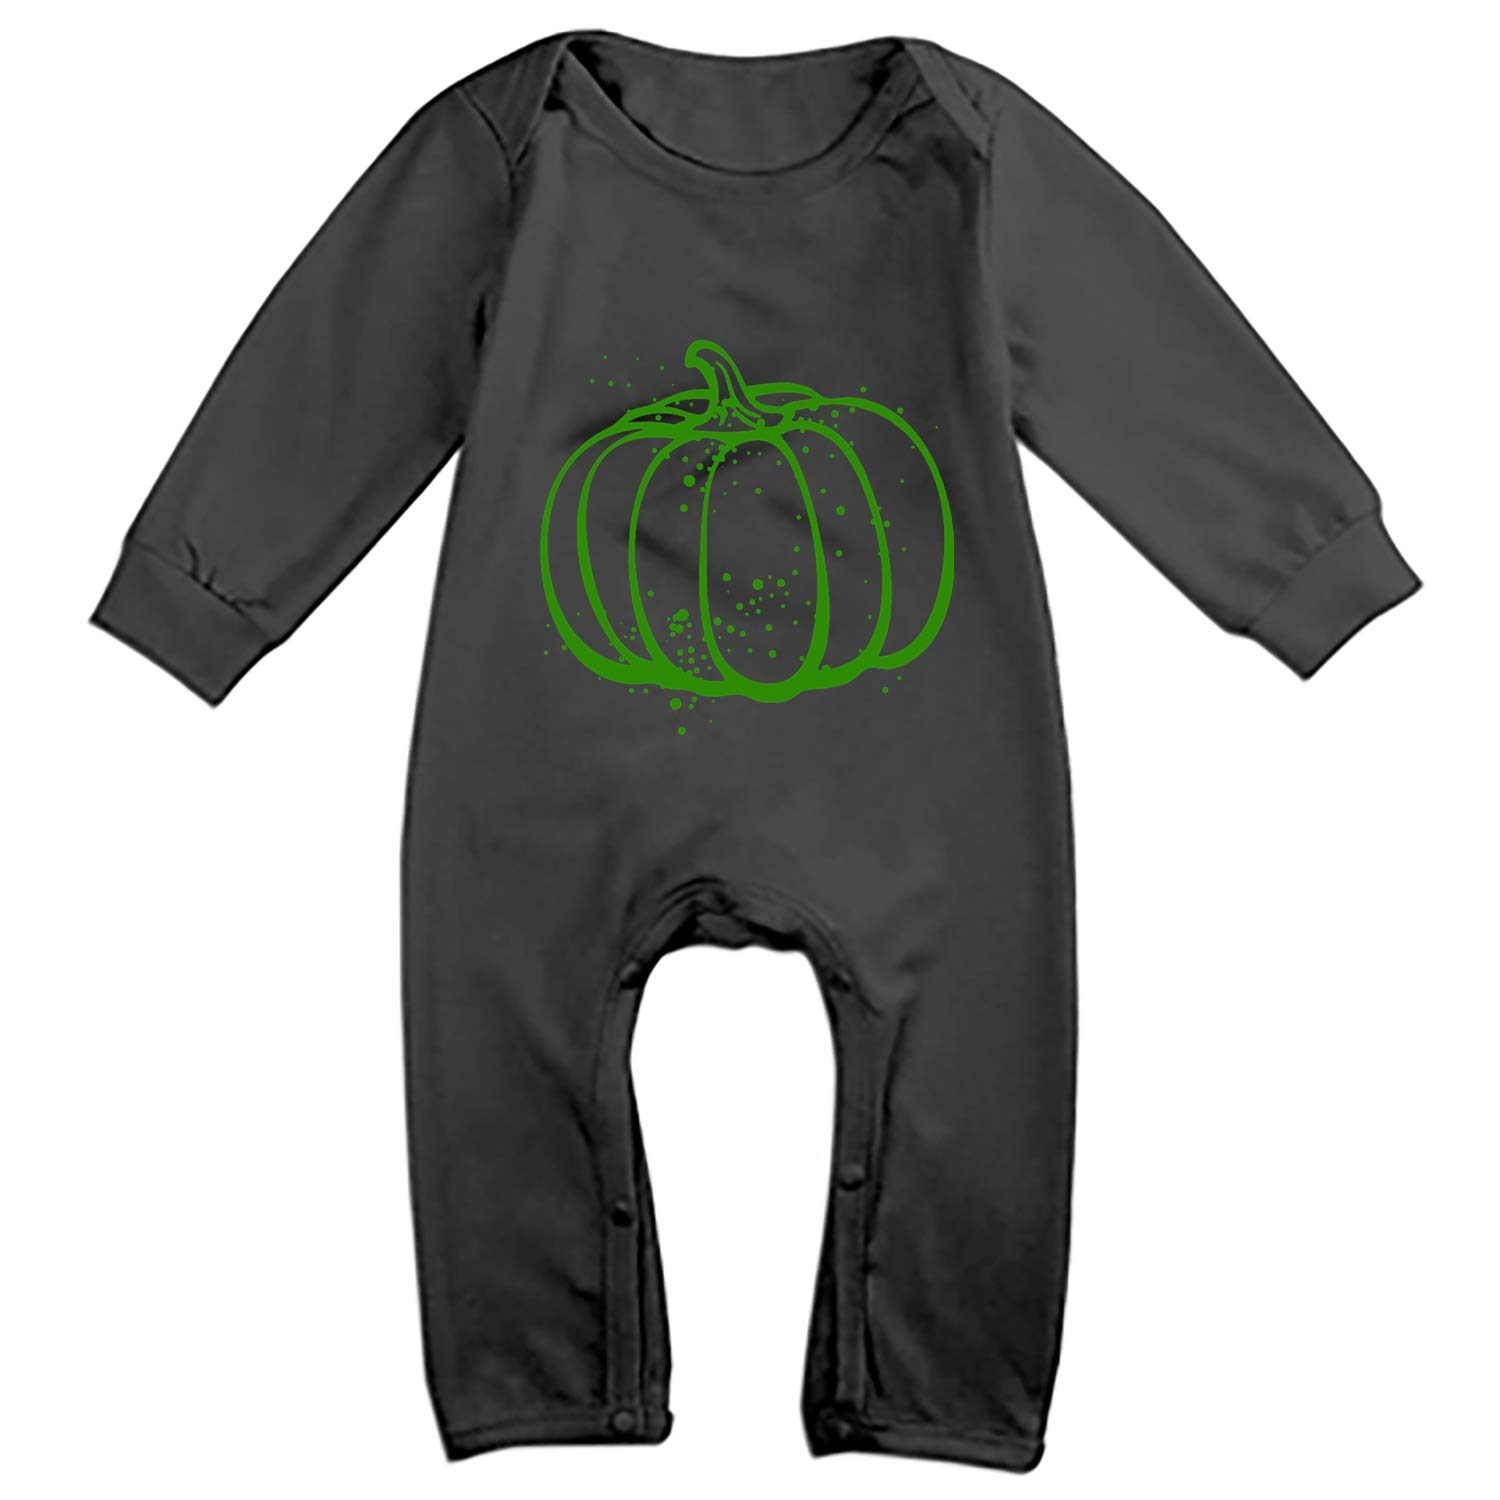 Faneilme Baby Pumpkin Spice Bodysuits Rompers Outfits Summer Clothes,Long Sleeve